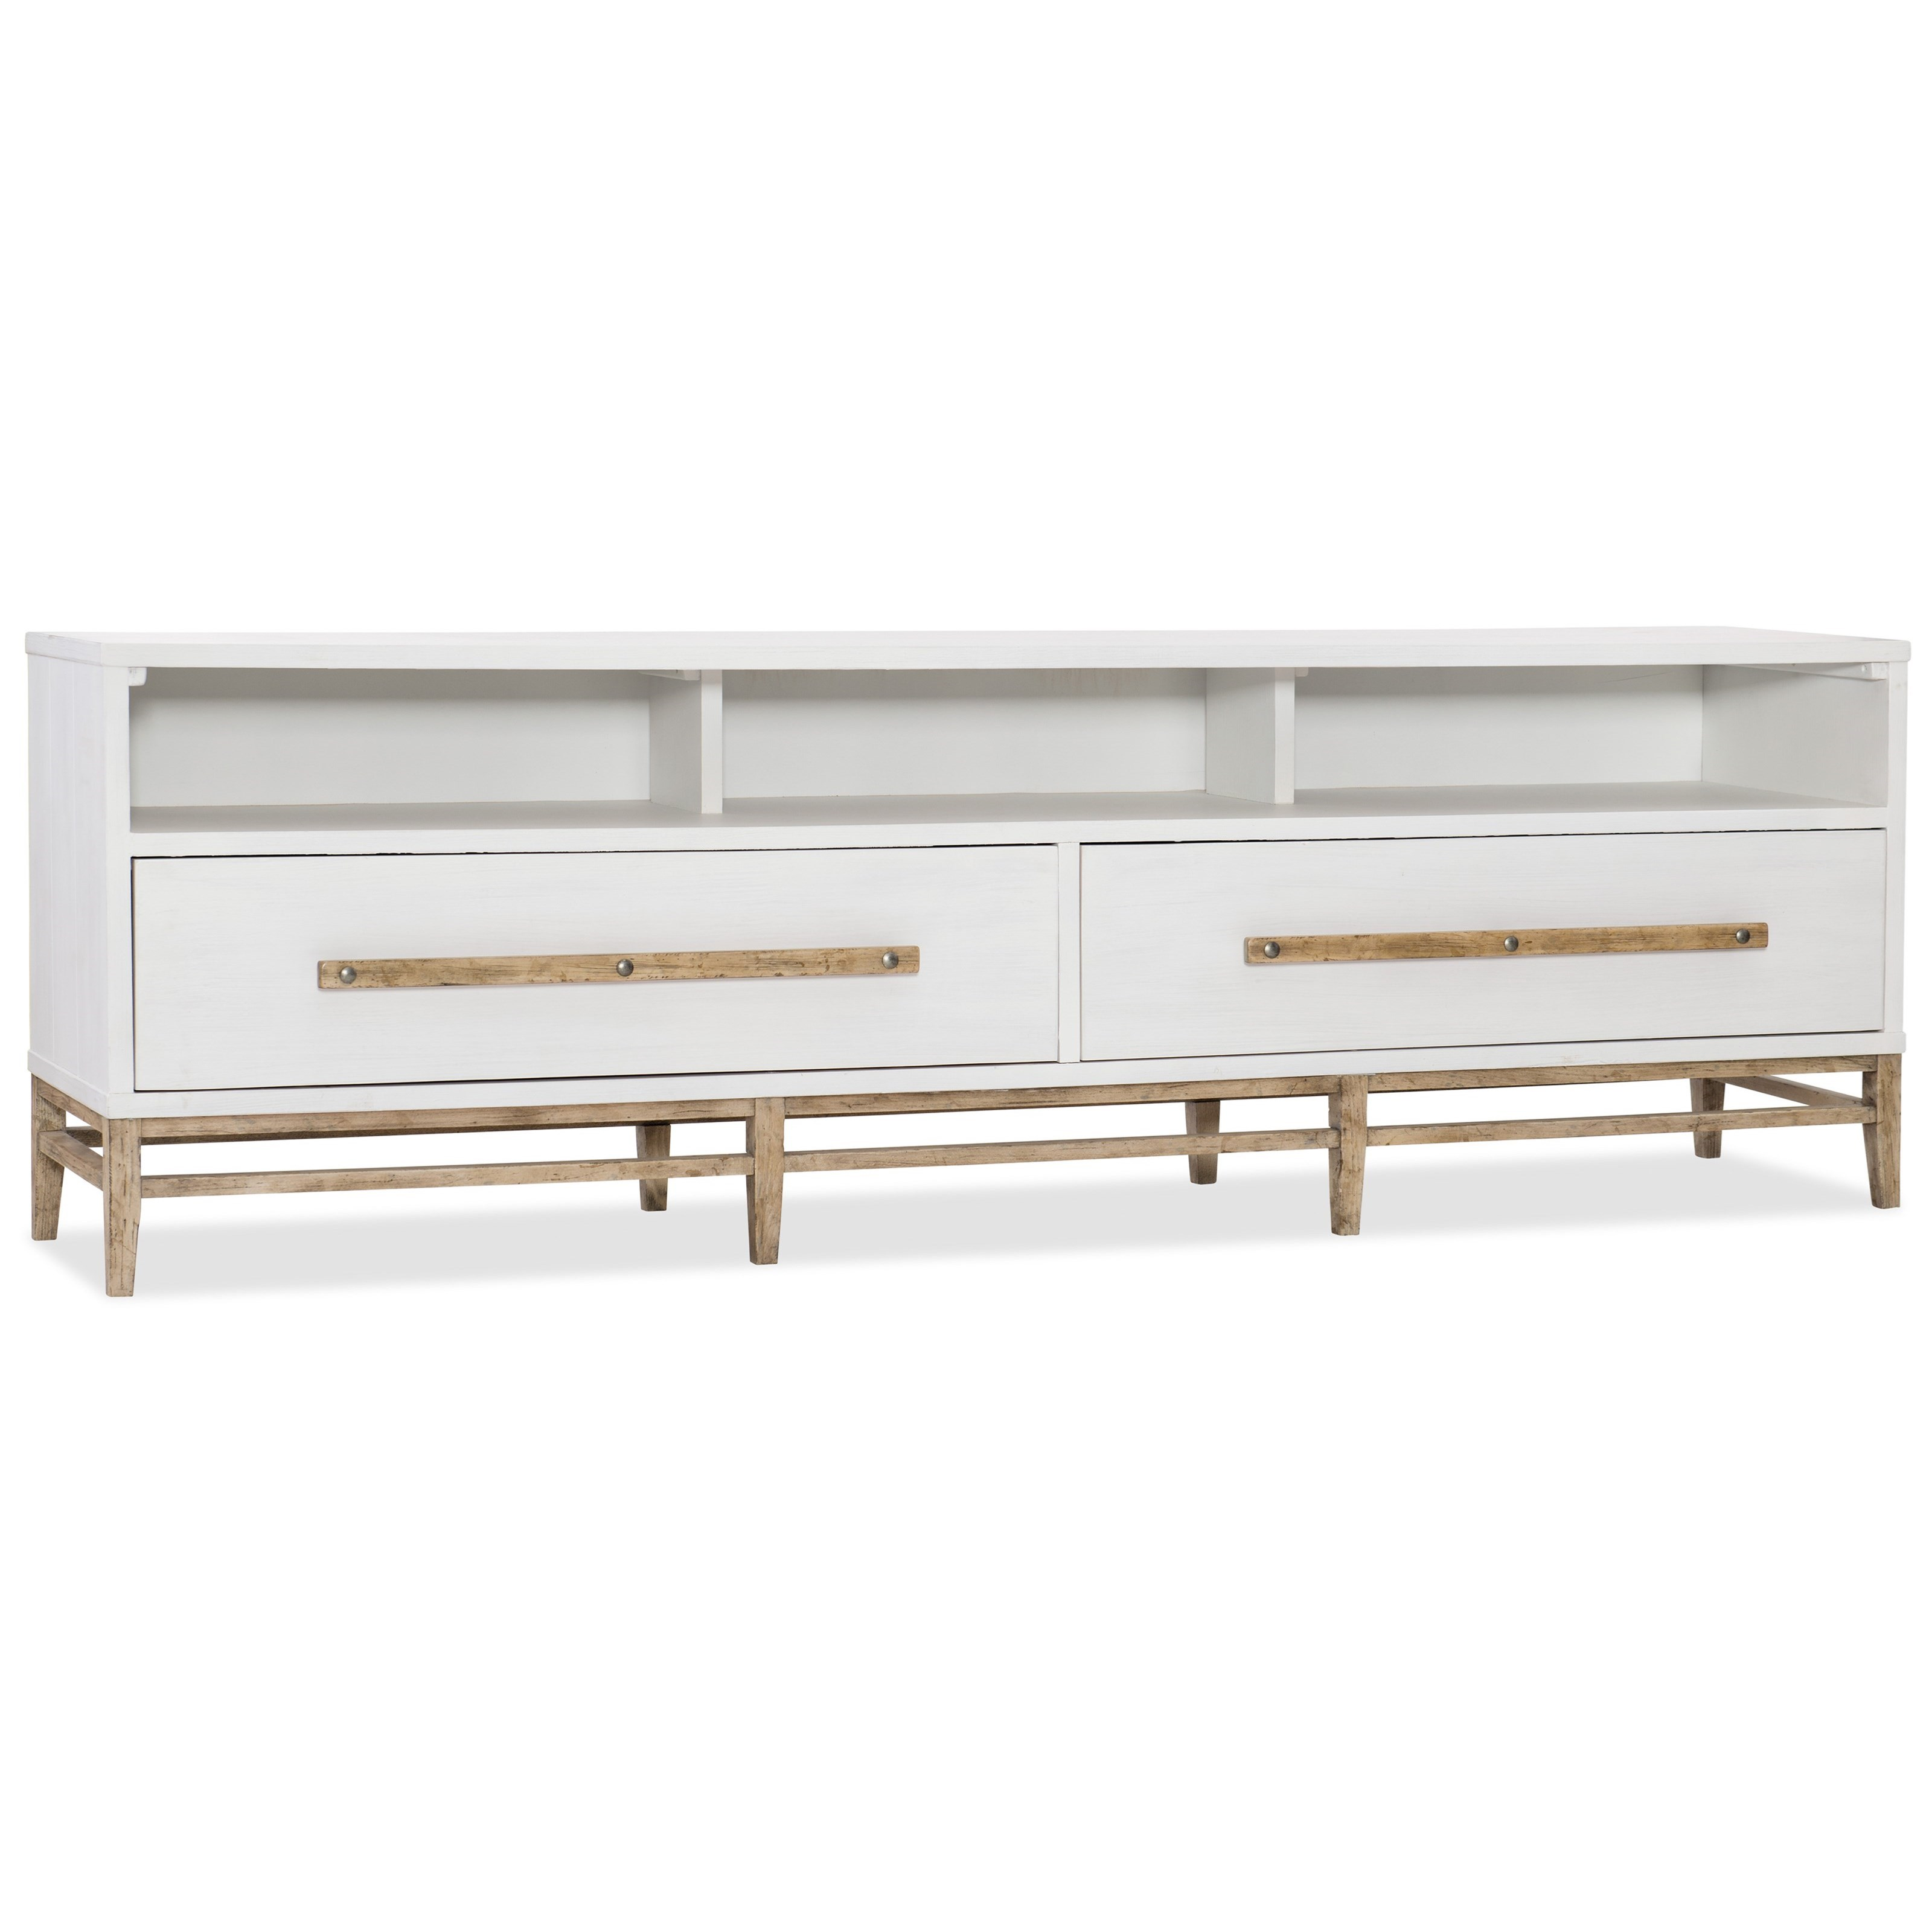 American Life-Urban Elevation Low Entertainment Console at Williams & Kay